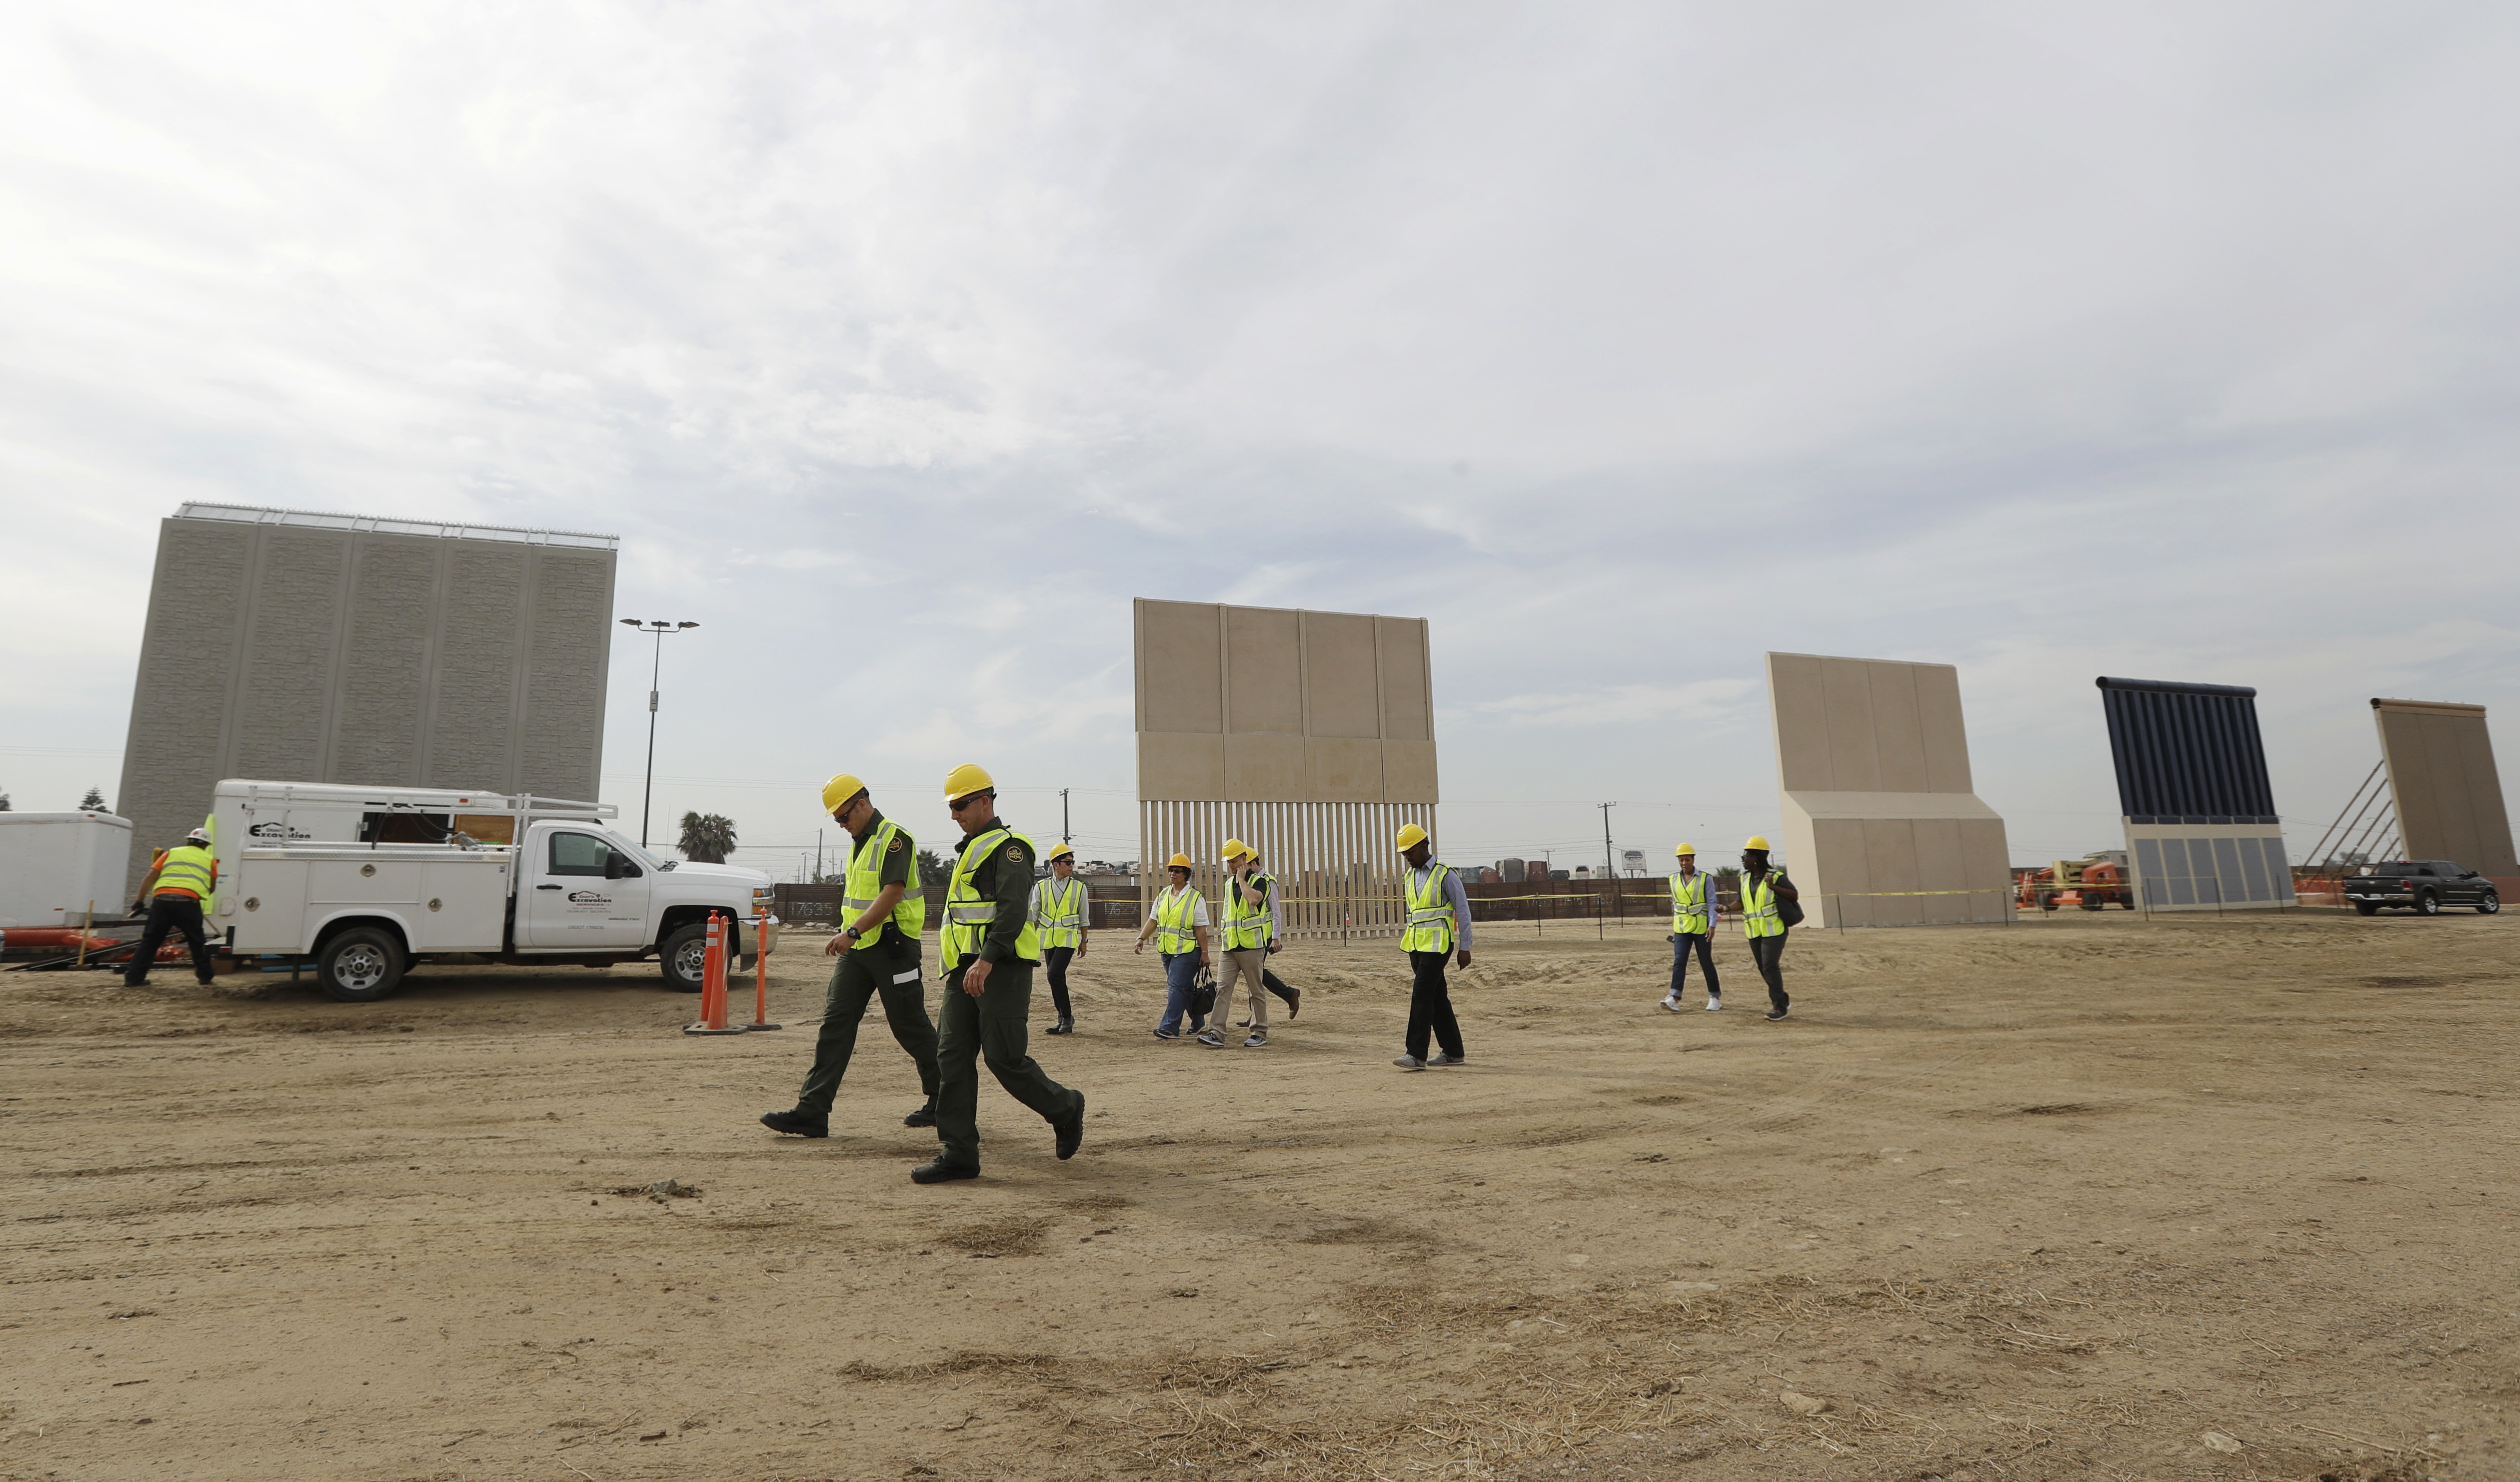 Crews work on a border wall prototype near the border with Tijuana, Mexico, on Oct. 19, 2017, in San Diego. Companies are nearing an Oct. 26 deadline to finish building eight prototypes of President Donald Trump's proposed border wall with Mexico. (Gregory Bull/AP)